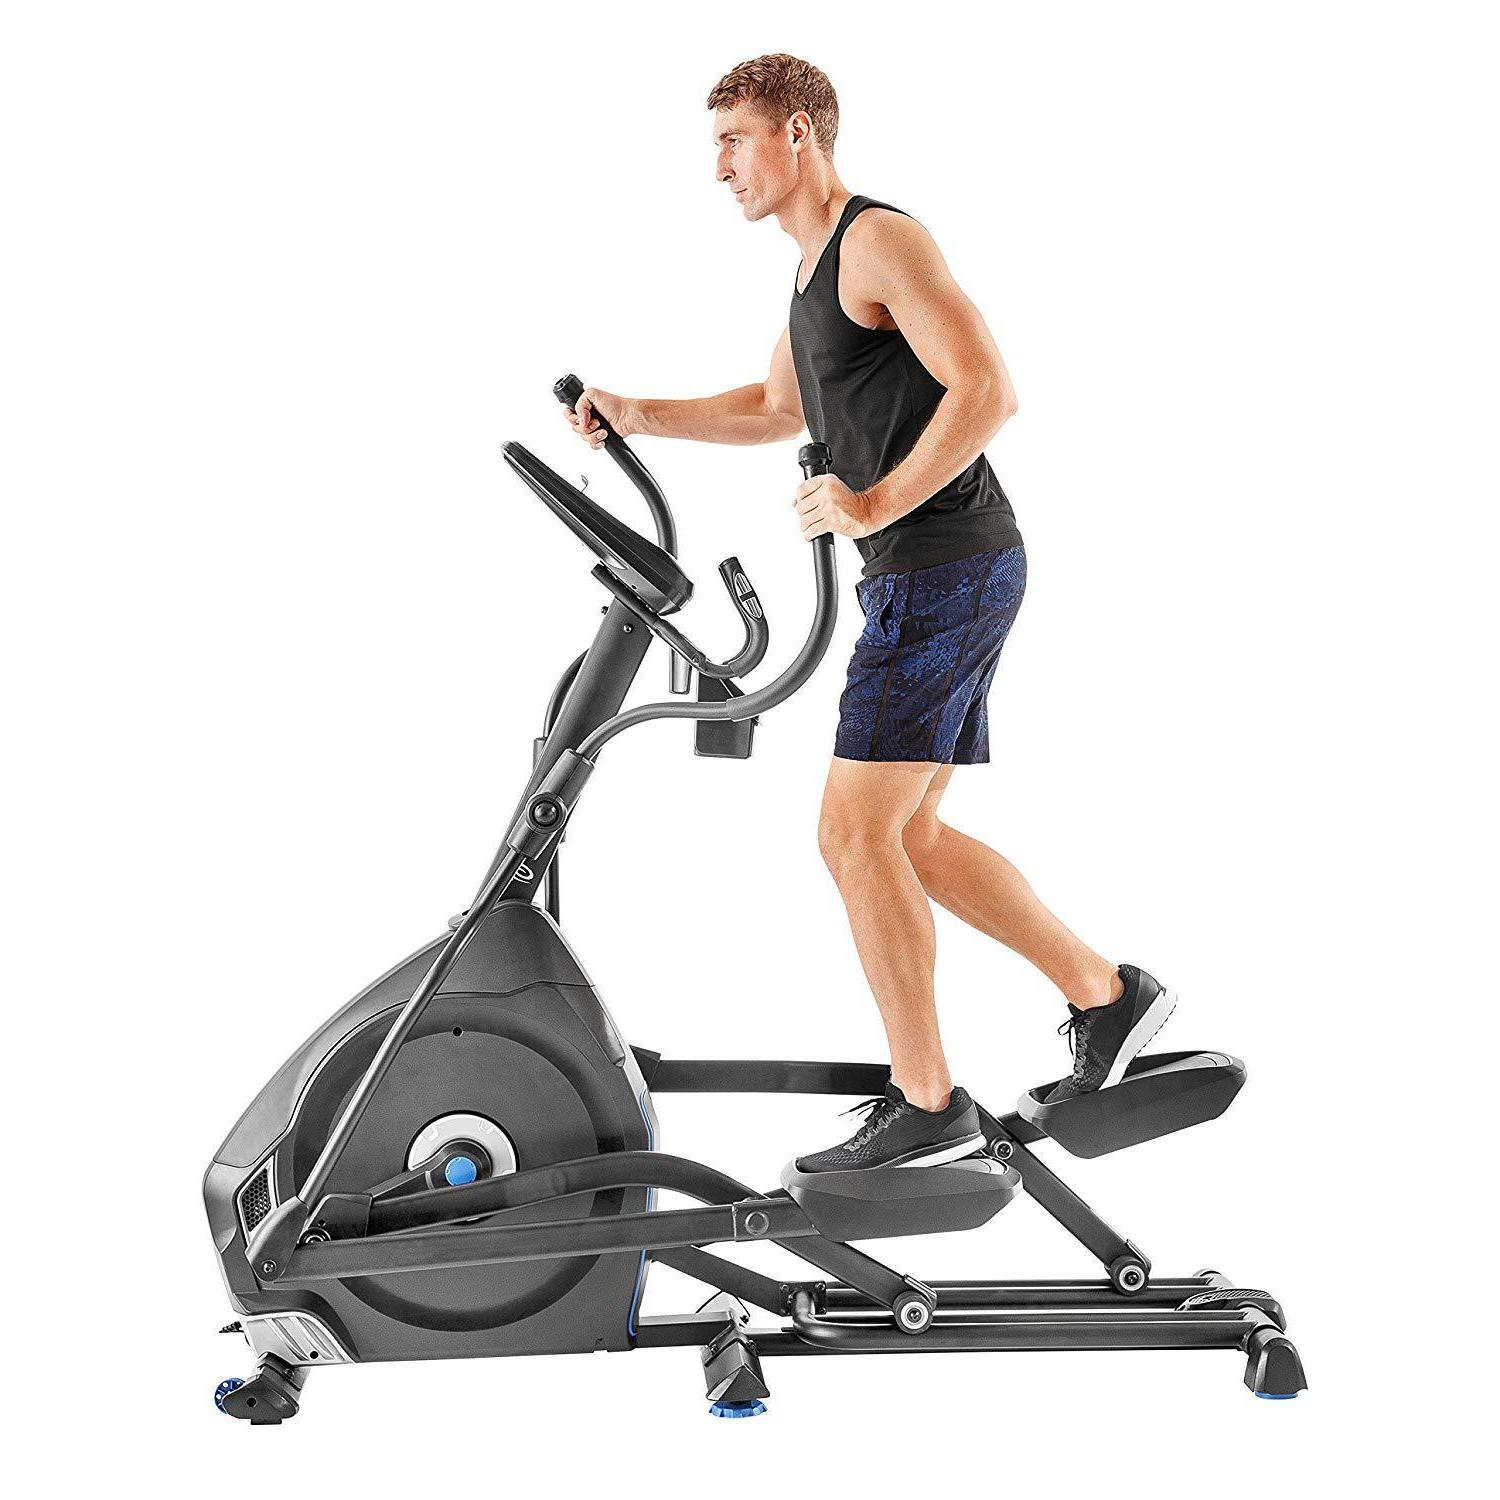 e616 elliptical trainer lowest price on ebay